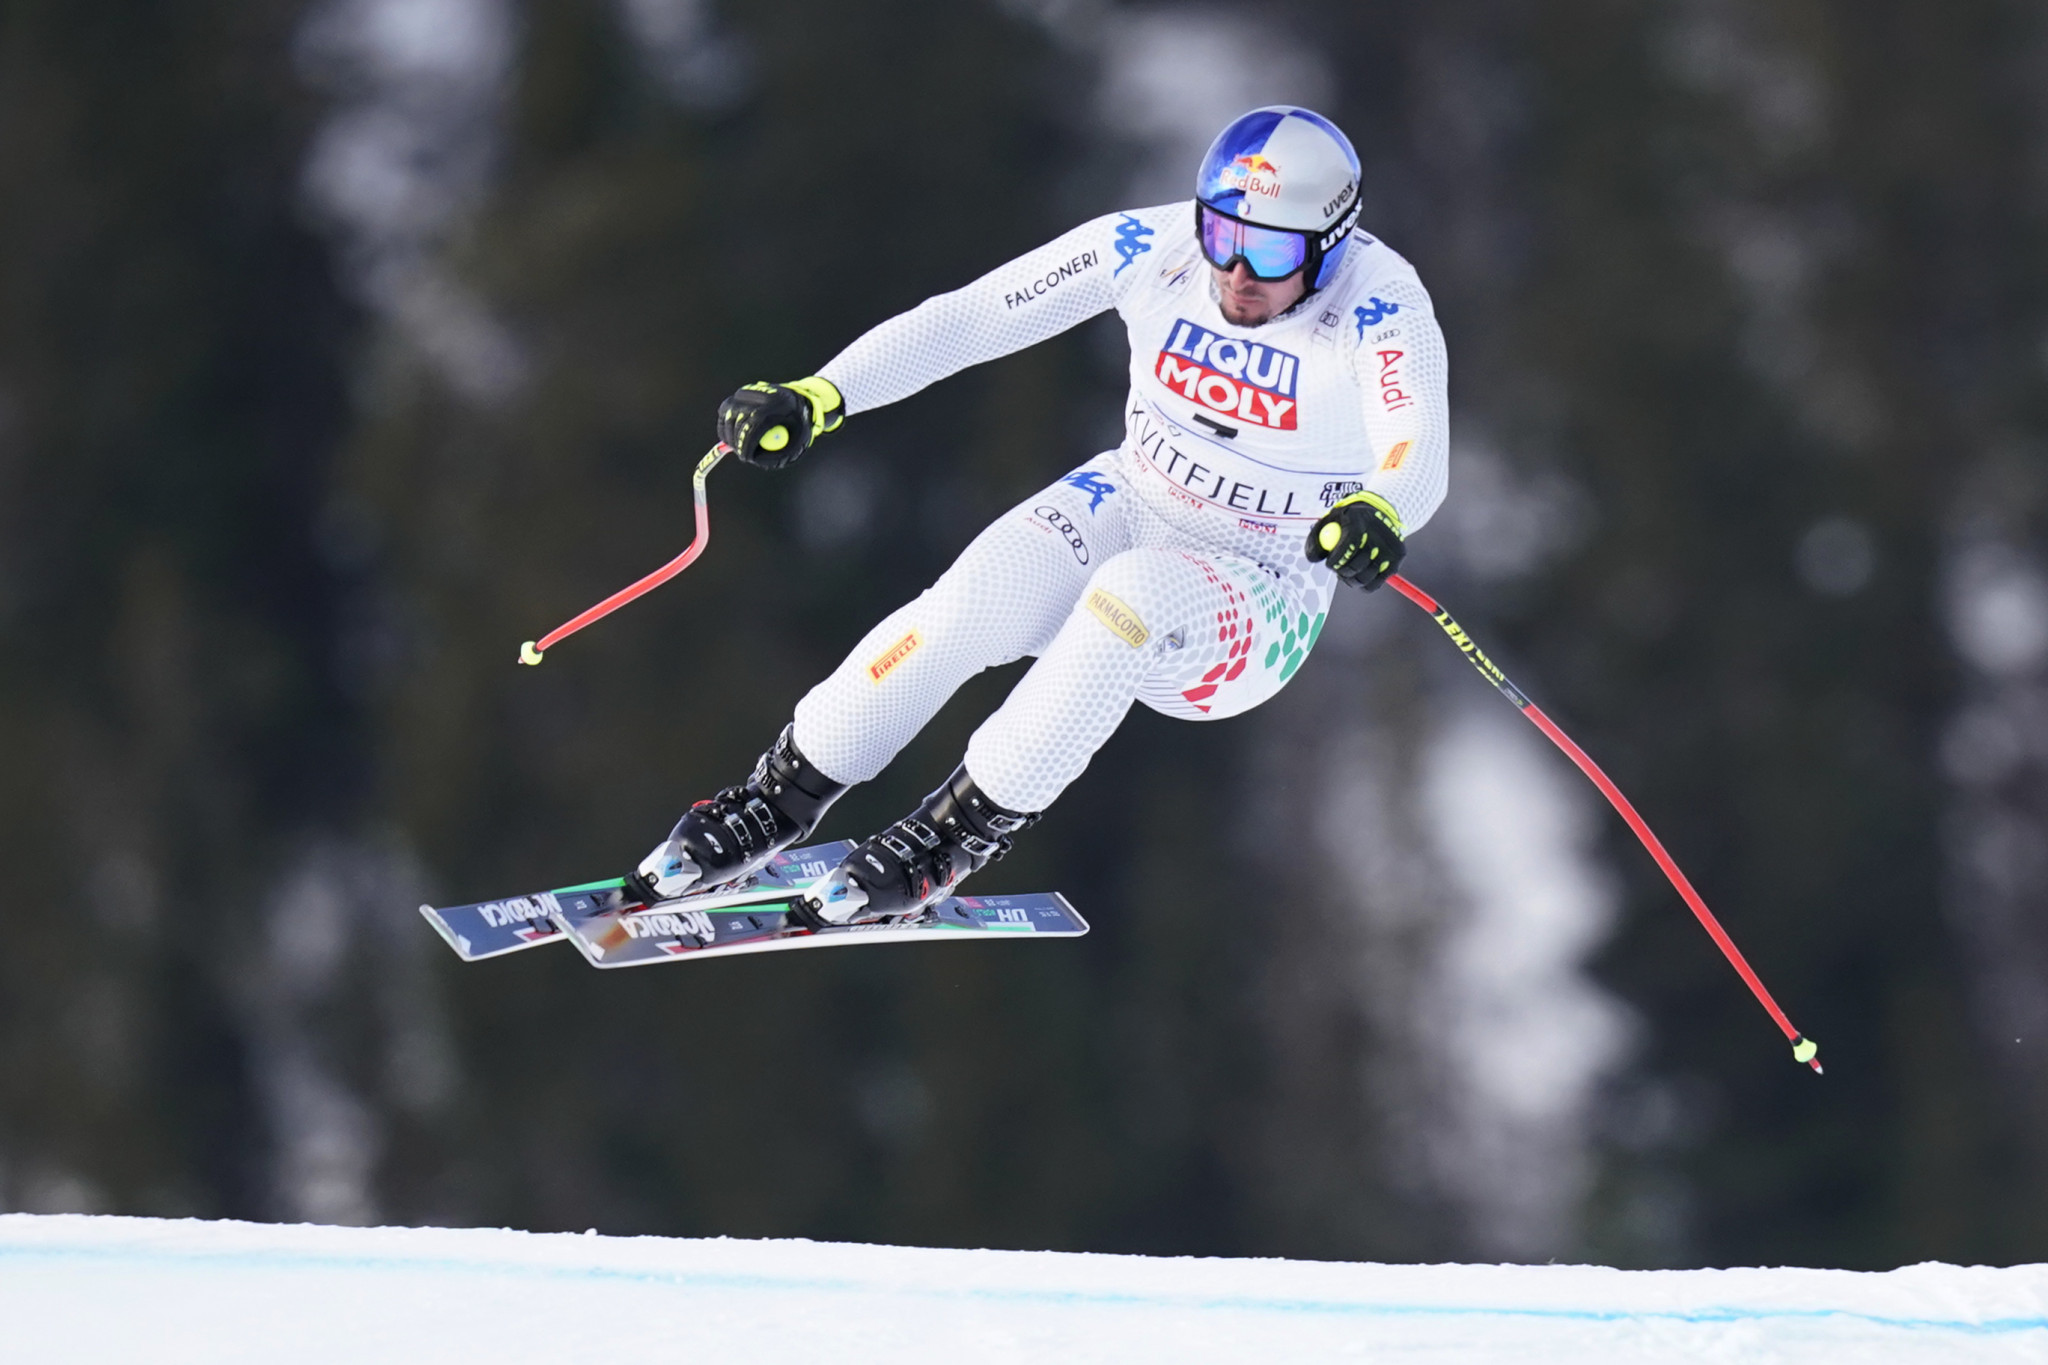 Italy's Dominik Paris won today's downhill in Kvitfjell ©Getty Images